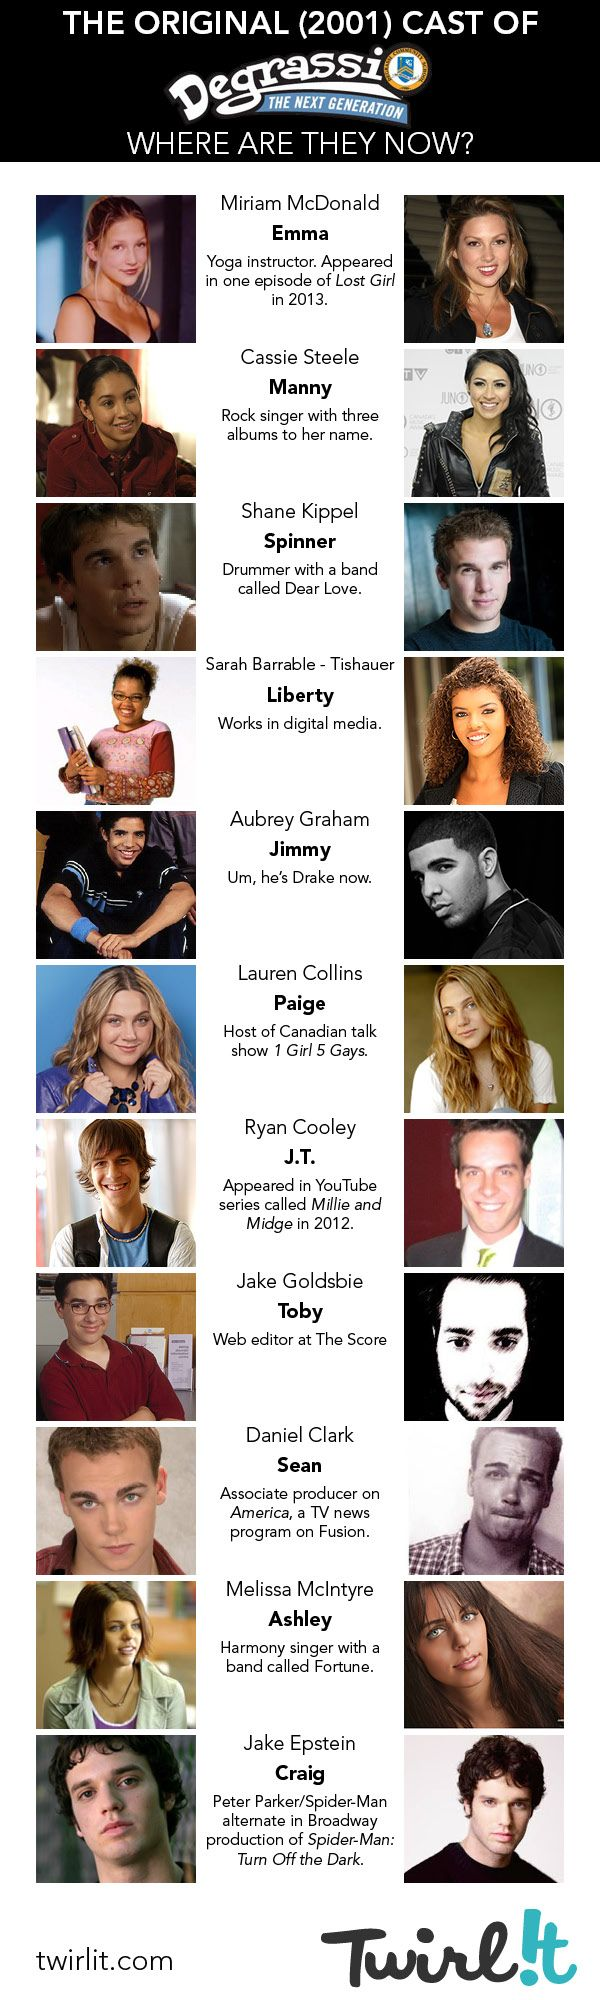 The 2001 cast of Degrassi: The Next Generation: where are they now? The answers might surprise you!